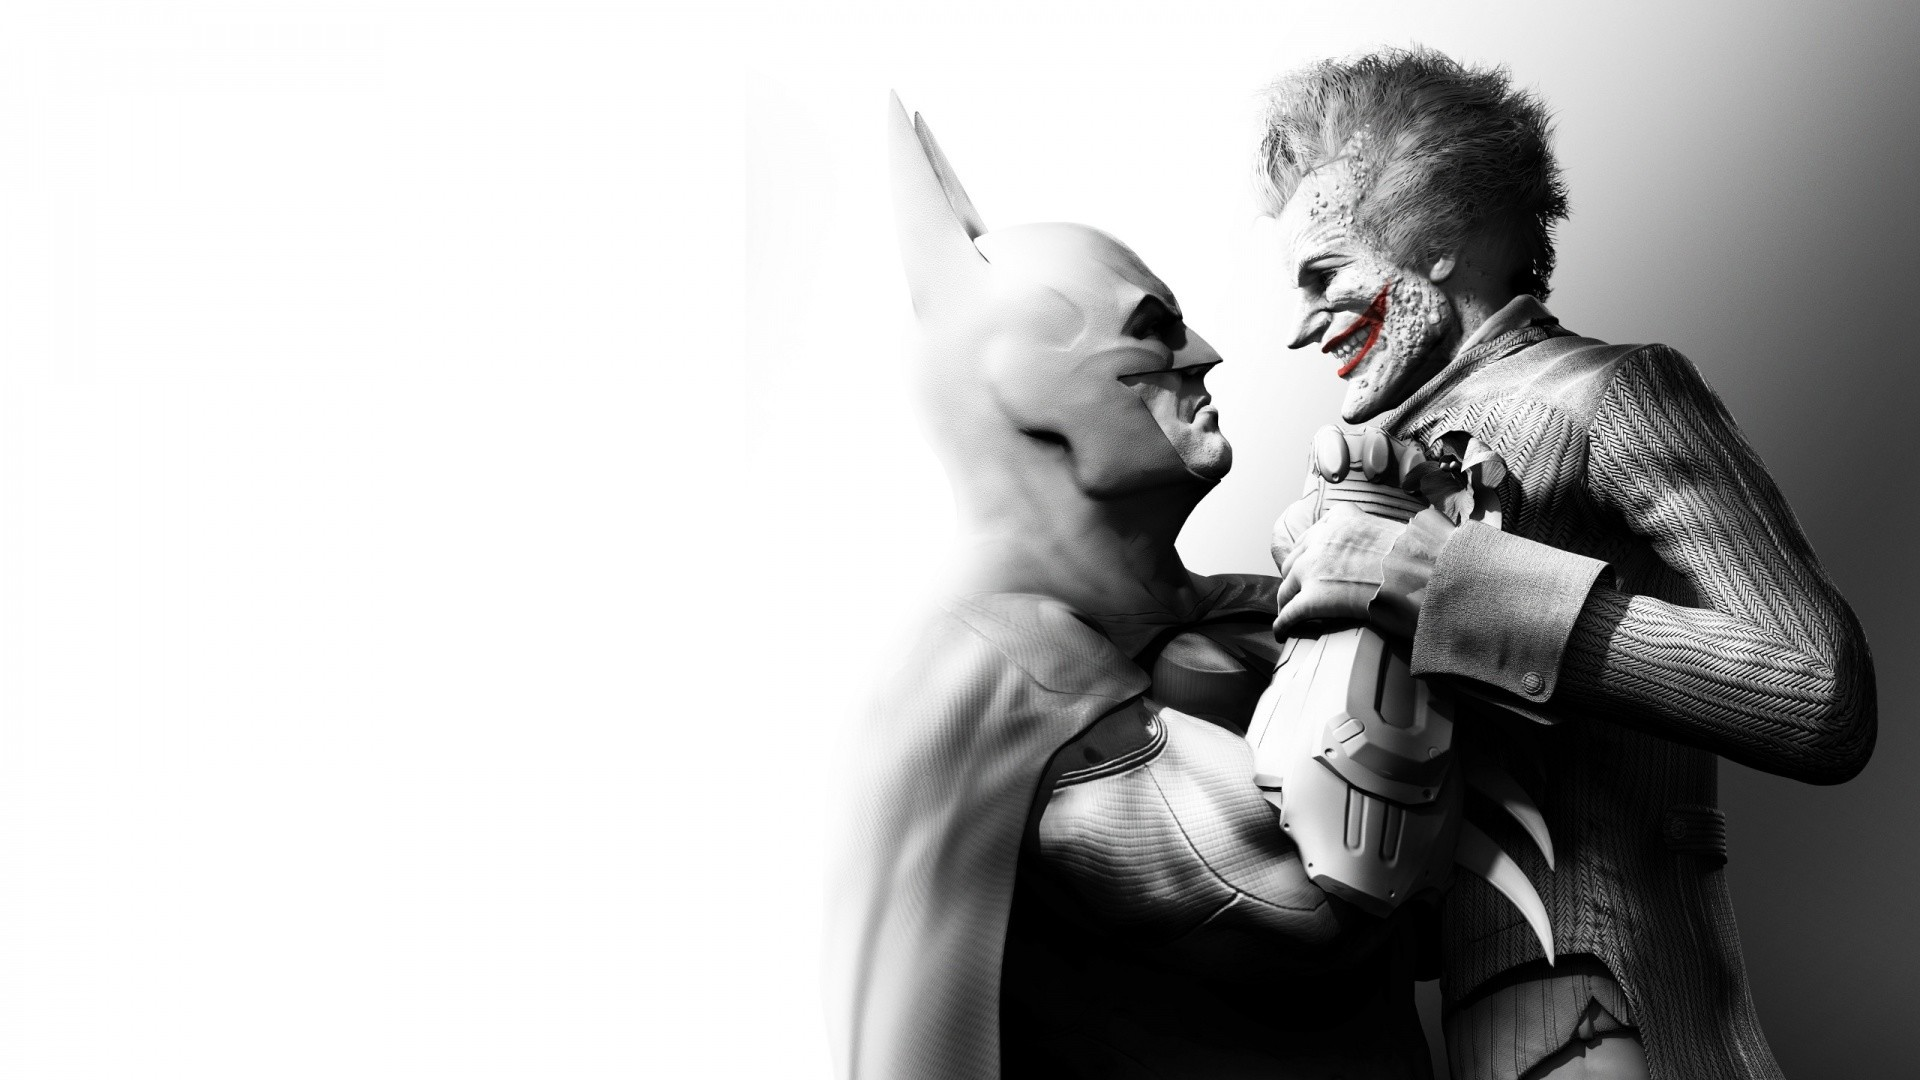 Res: 1920x1080, Batman And Joker Wallpaper HD